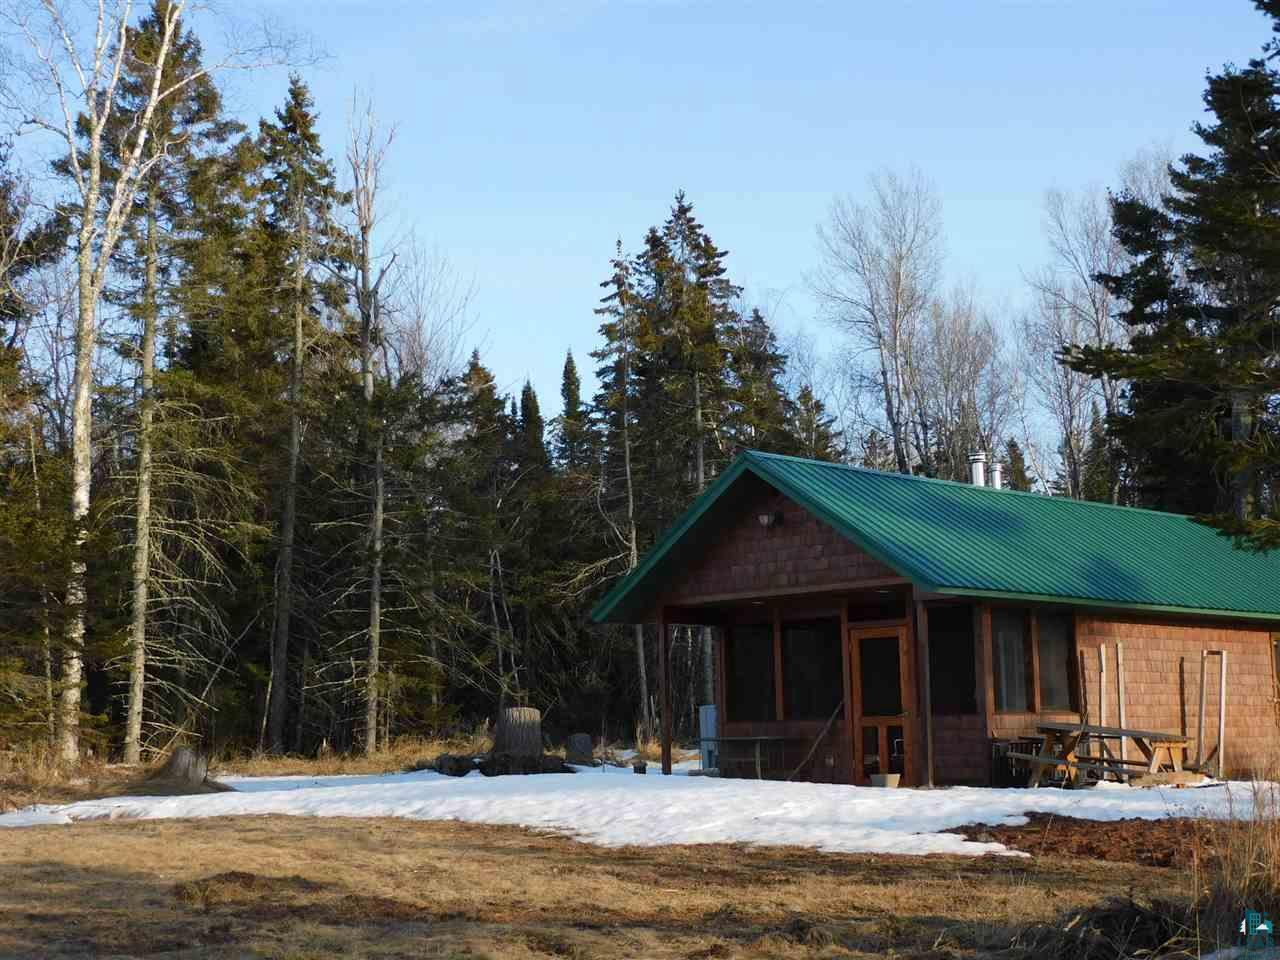 """Are you looking for that weekend getaway retreat from everyday life! """"One of a Kind"""" unique property, just waiting for you with incredible breath-taking panoramic views on Lake Superior. Private and secluded seasonal cabin with a full bathroom and a bunkhouse located on approximately 6.5 acres with 560' of Lake Superior with your own sandy beach area, and 760' of river frontage from the east bank of """"Fish Creek.""""  You have the best of both worlds fishing on the largest freshwater Lake in the world and River for fishing, canoeing, kayaking, swimming, or just walking in the water to feel the sand between your toes. Cuddling around the firepit or sitting on the picnic table with your family and friends looking at stunning sunset and sunrises lake views and watching flying eagles around you!  Seasonal cabin and bunkhouse were built in 2007, with a full bathroom, wood burning stove Sauna, Kitchen area/Living room with futon, and screened-in front porch with great views of Lake Superior. The cabin features power/lights, On-demand hot water heater, tongue and groove ceilings, dry wall, and ceiling fan.  The kids will love the bunkhouse that has a large screened-in 12X14 area below and upper area with patio doors and windows with a great views, table/desk area, top bunk bed sleeping area, power & lights. Brand new septic system 2019 , good tasting water with a private drilled well. Two options for internet by dish or fiber-optic high-speed internet service, premium channels, phone & security provided by Norvado that is available at the road.  Enjoy the shores of Lake Superior beaches and the fantastic collection of information, artifacts and family history in this area. Only a short distance from the Bark Point public boat landing and beaches, """"Siskiwit Bay Beach,"""" """"Bark Bay Slough"""" Natural Area (522 acres), also visit the quaint little village shops in Port Wing &  Cornucopia.  Located near 1000's acres of national forest and county lands, with many trails for ATV, hiking,"""